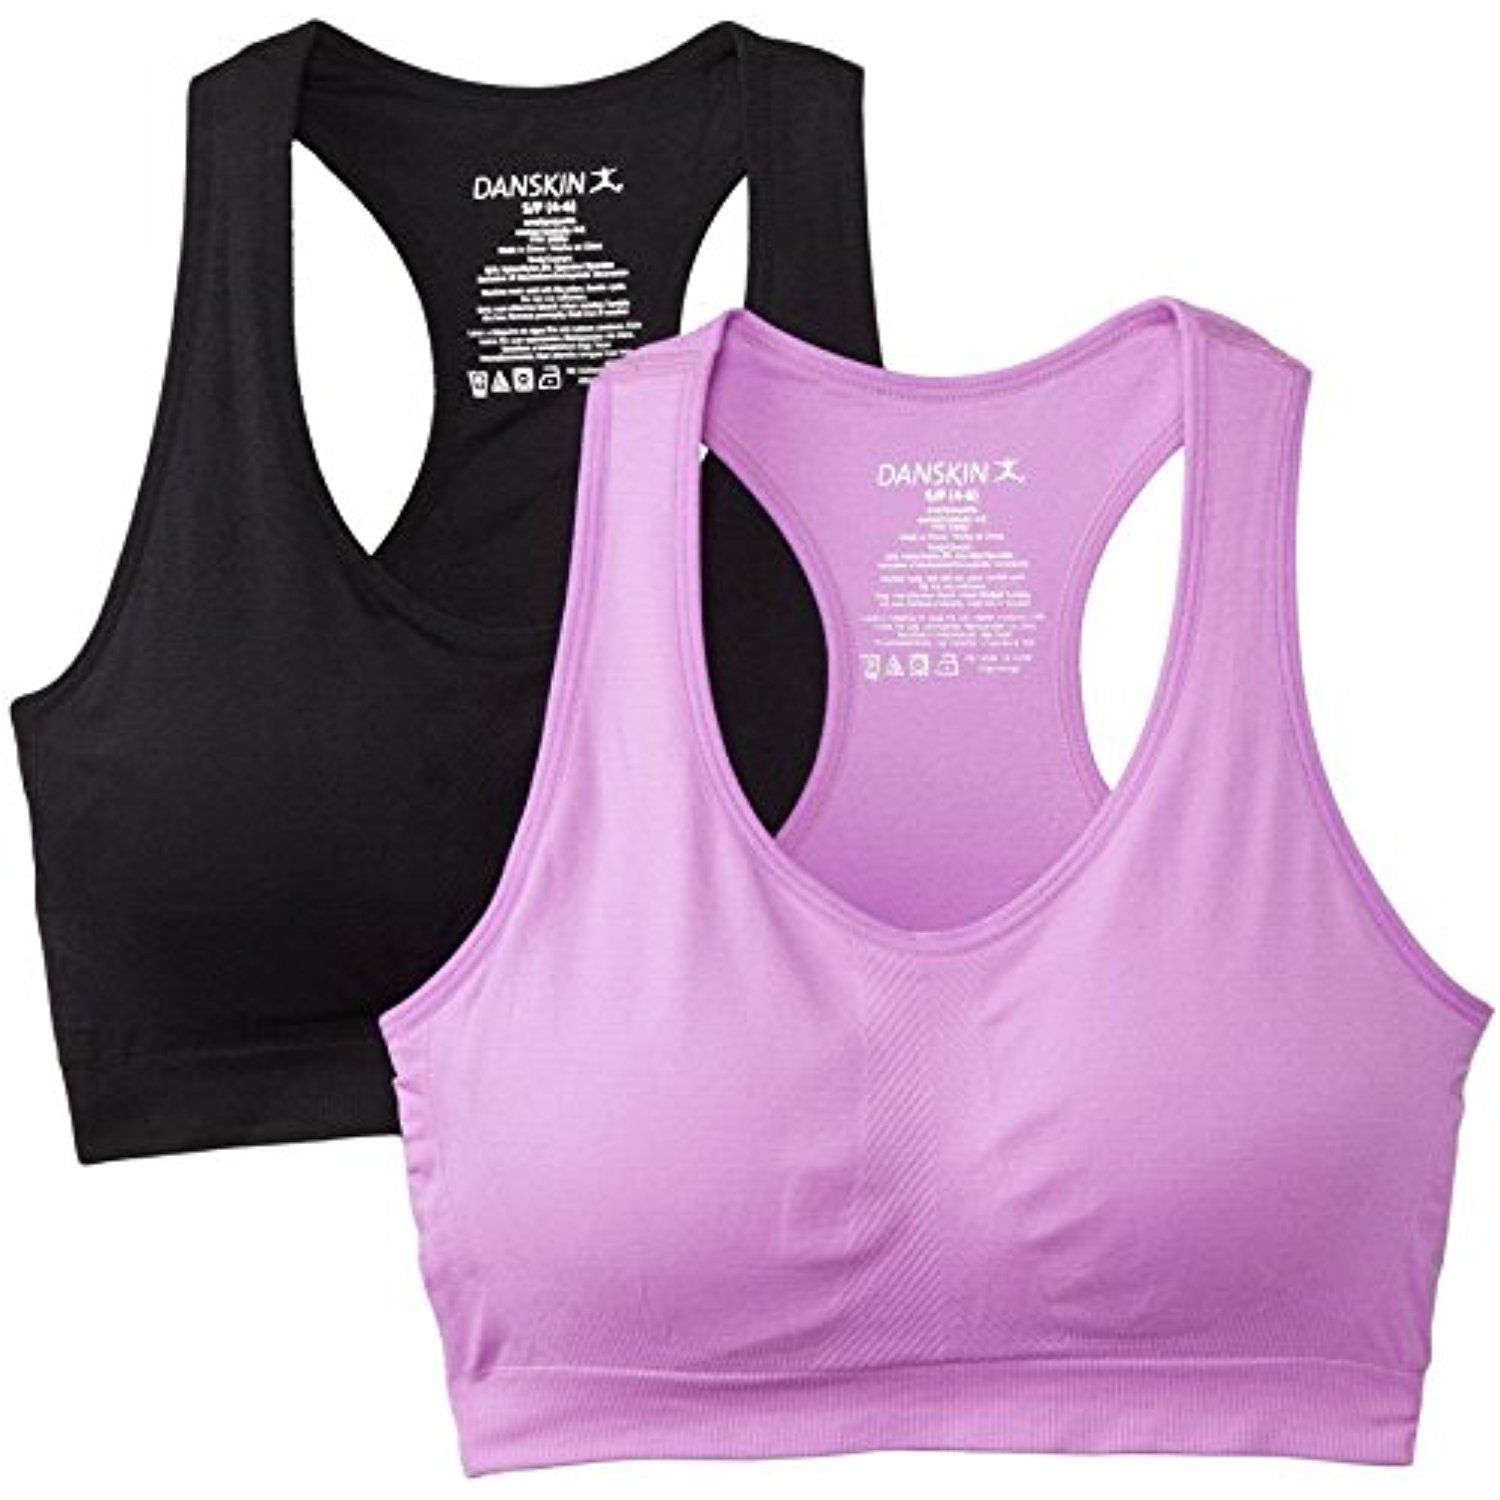 Women's TwoPack Seamless Sports Bra Click image for